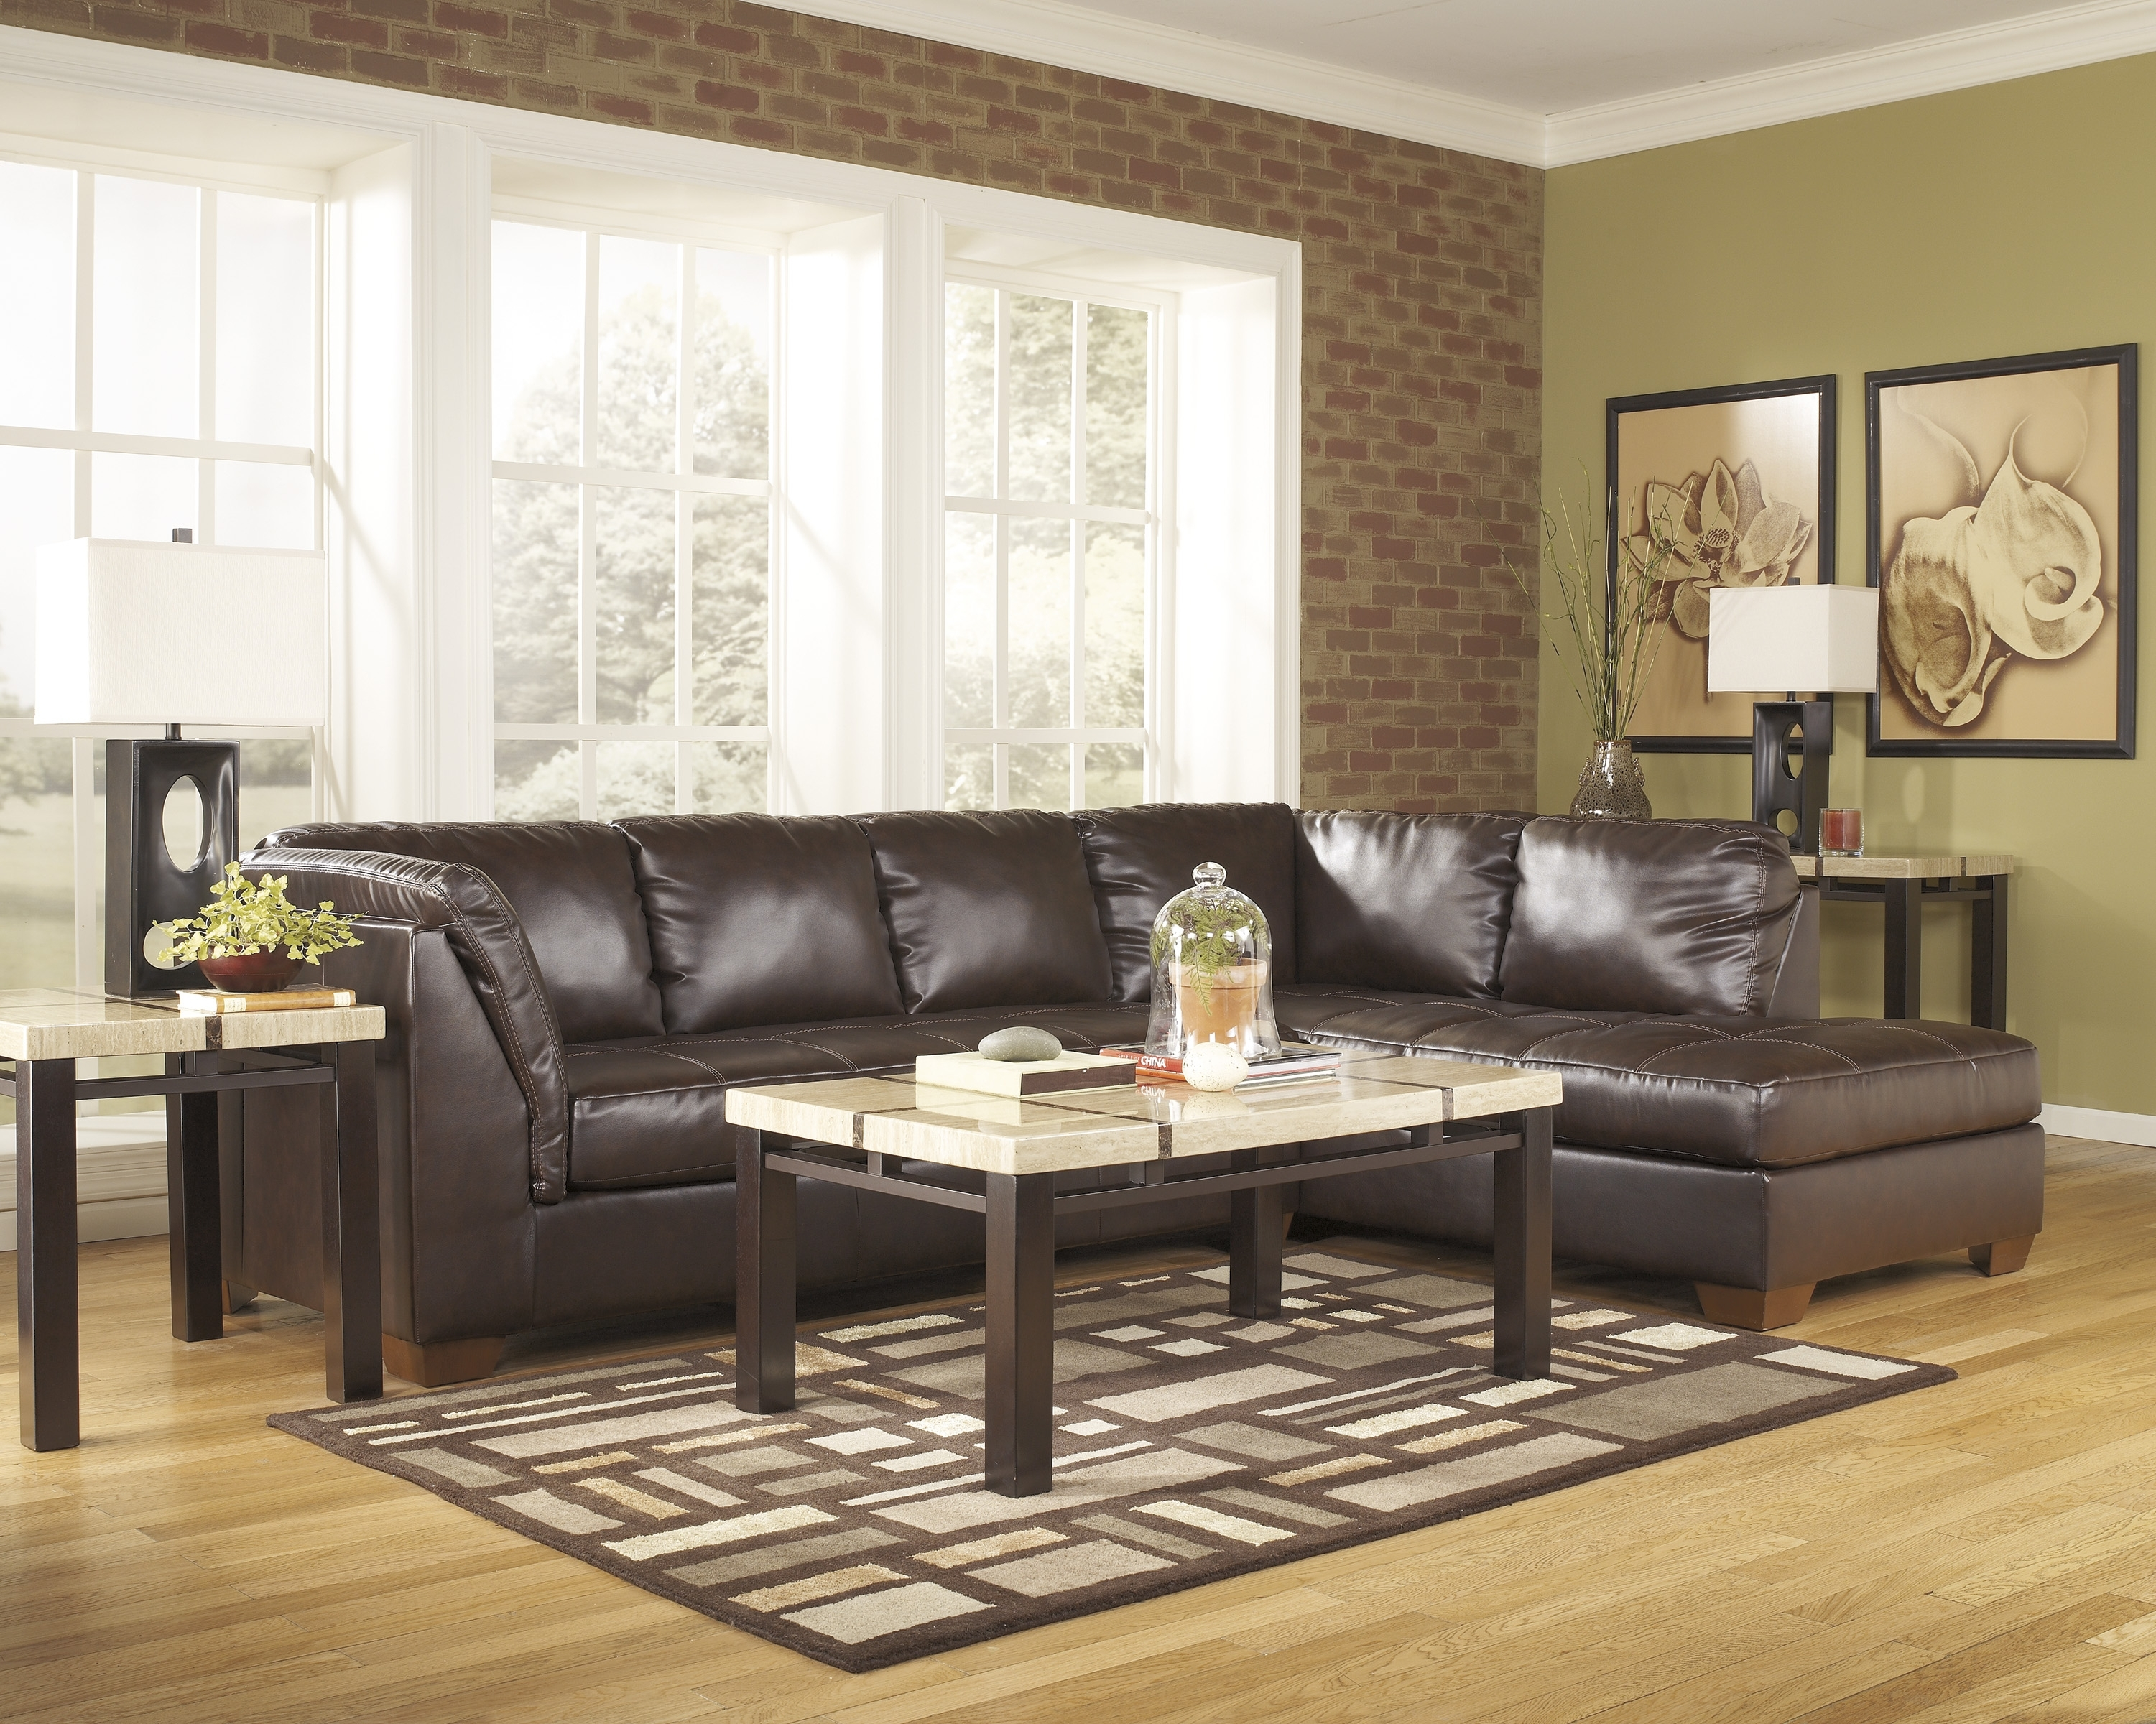 3 Piece Leather Sectional Sofa With Chaise | Home Furniture Decoration regarding Gordon 3 Piece Sectionals With Raf Chaise (Image 3 of 30)